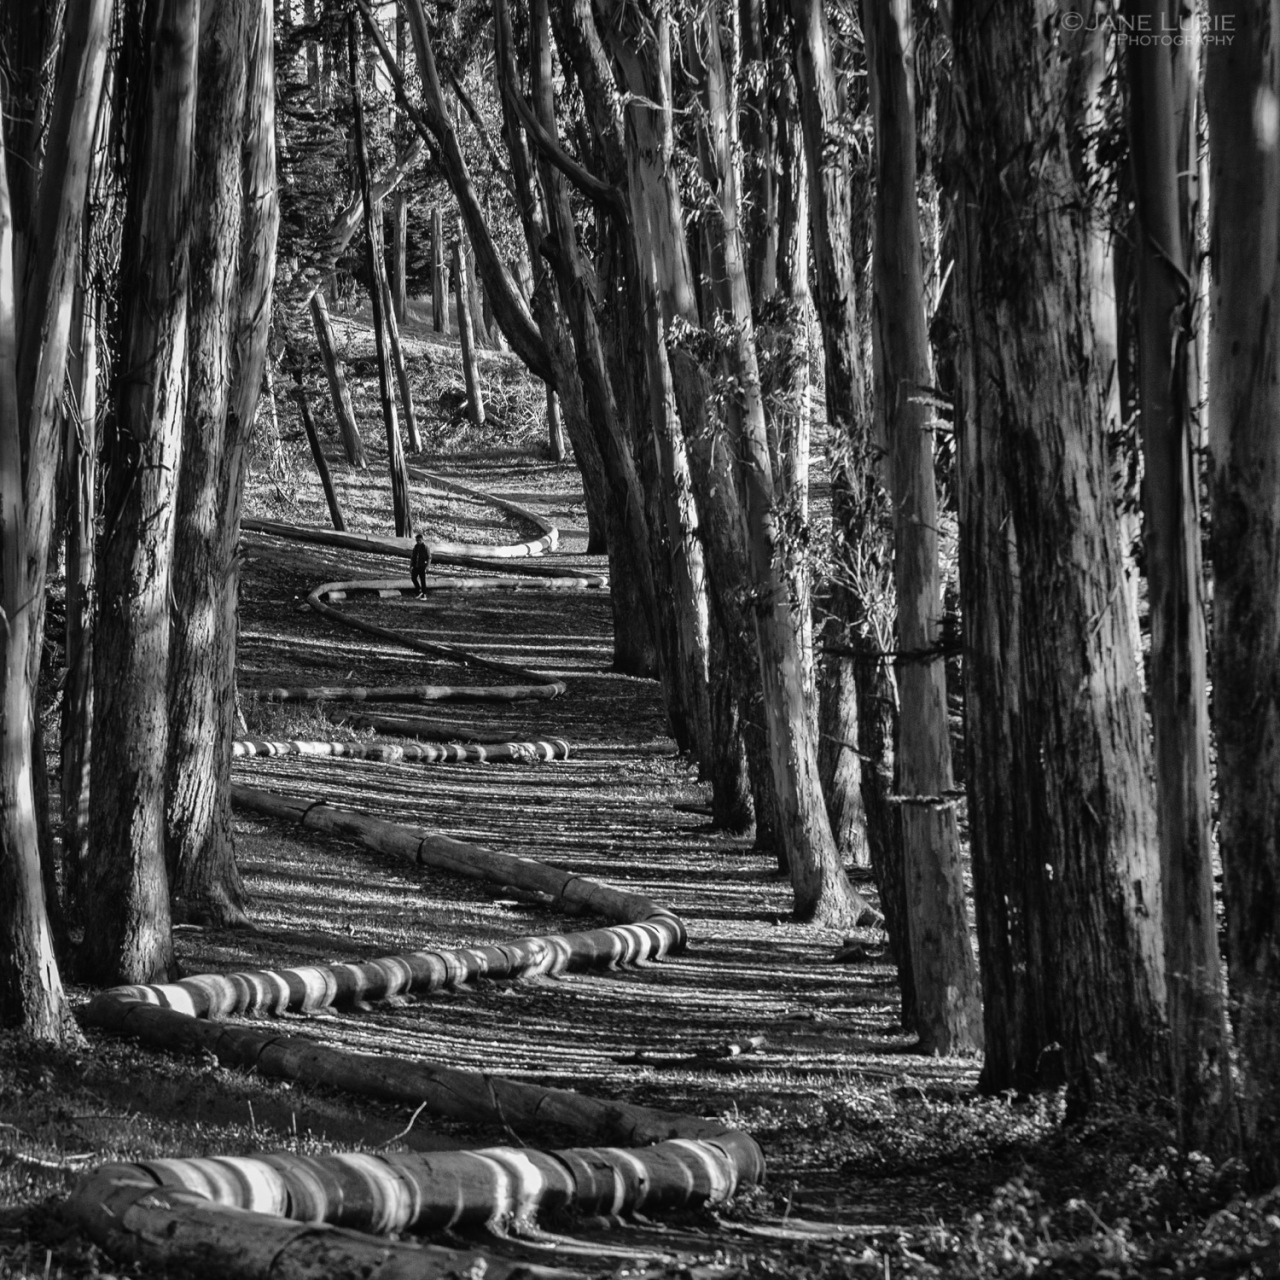 San Francisco, Andy Goldsworthy, Presidio, Nature, Photography, Landscape